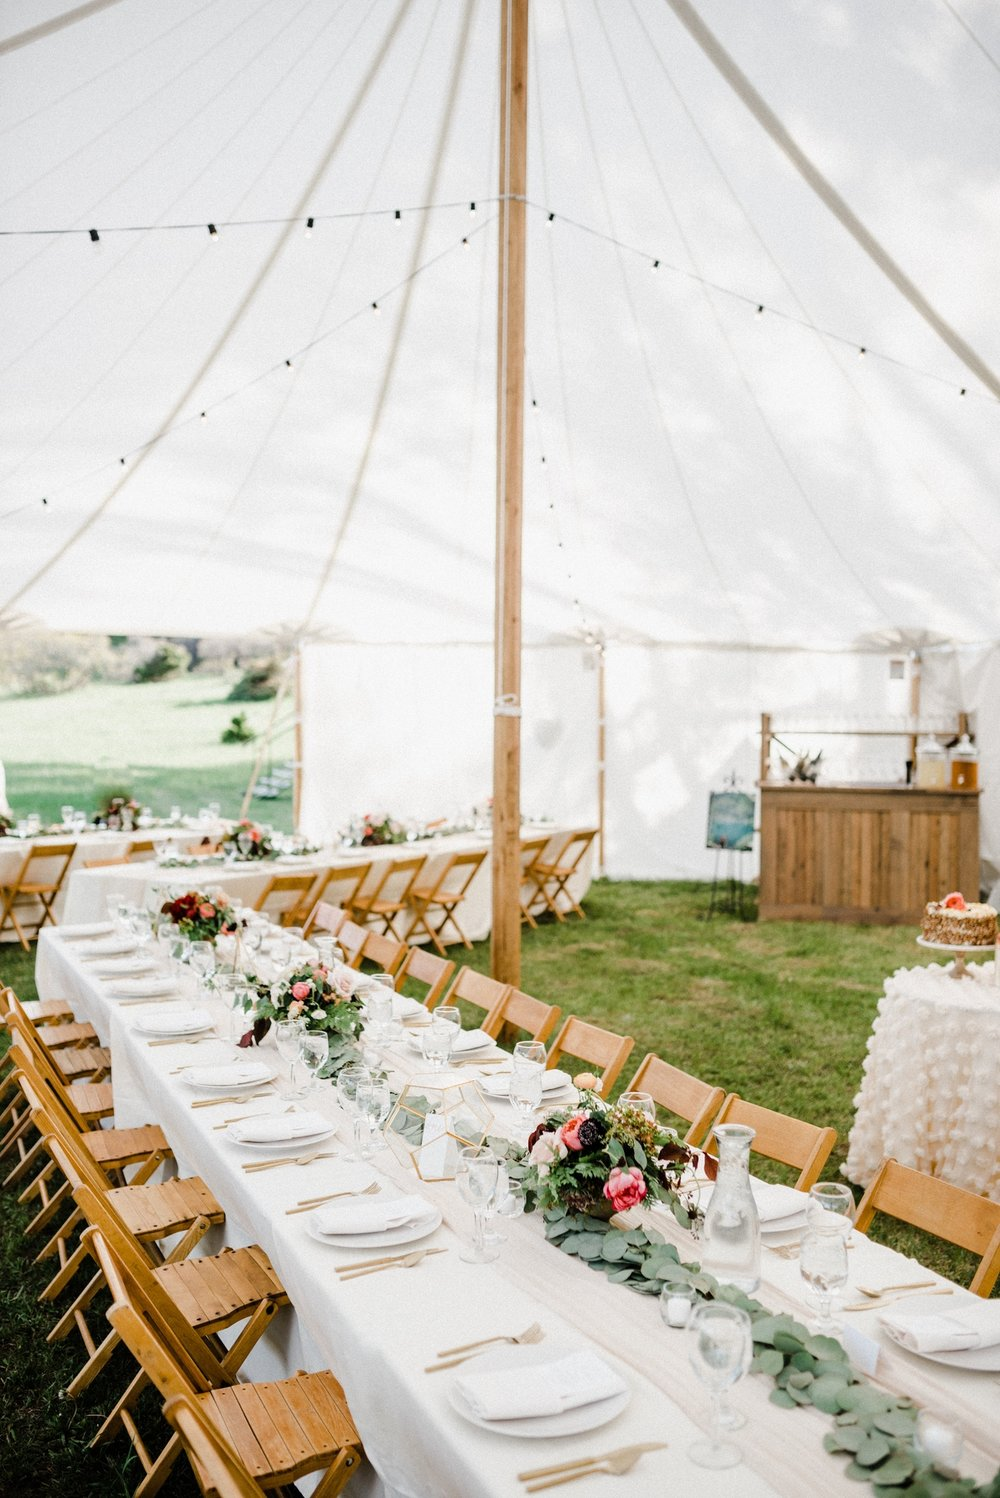 Tented wedding reception in Telluride